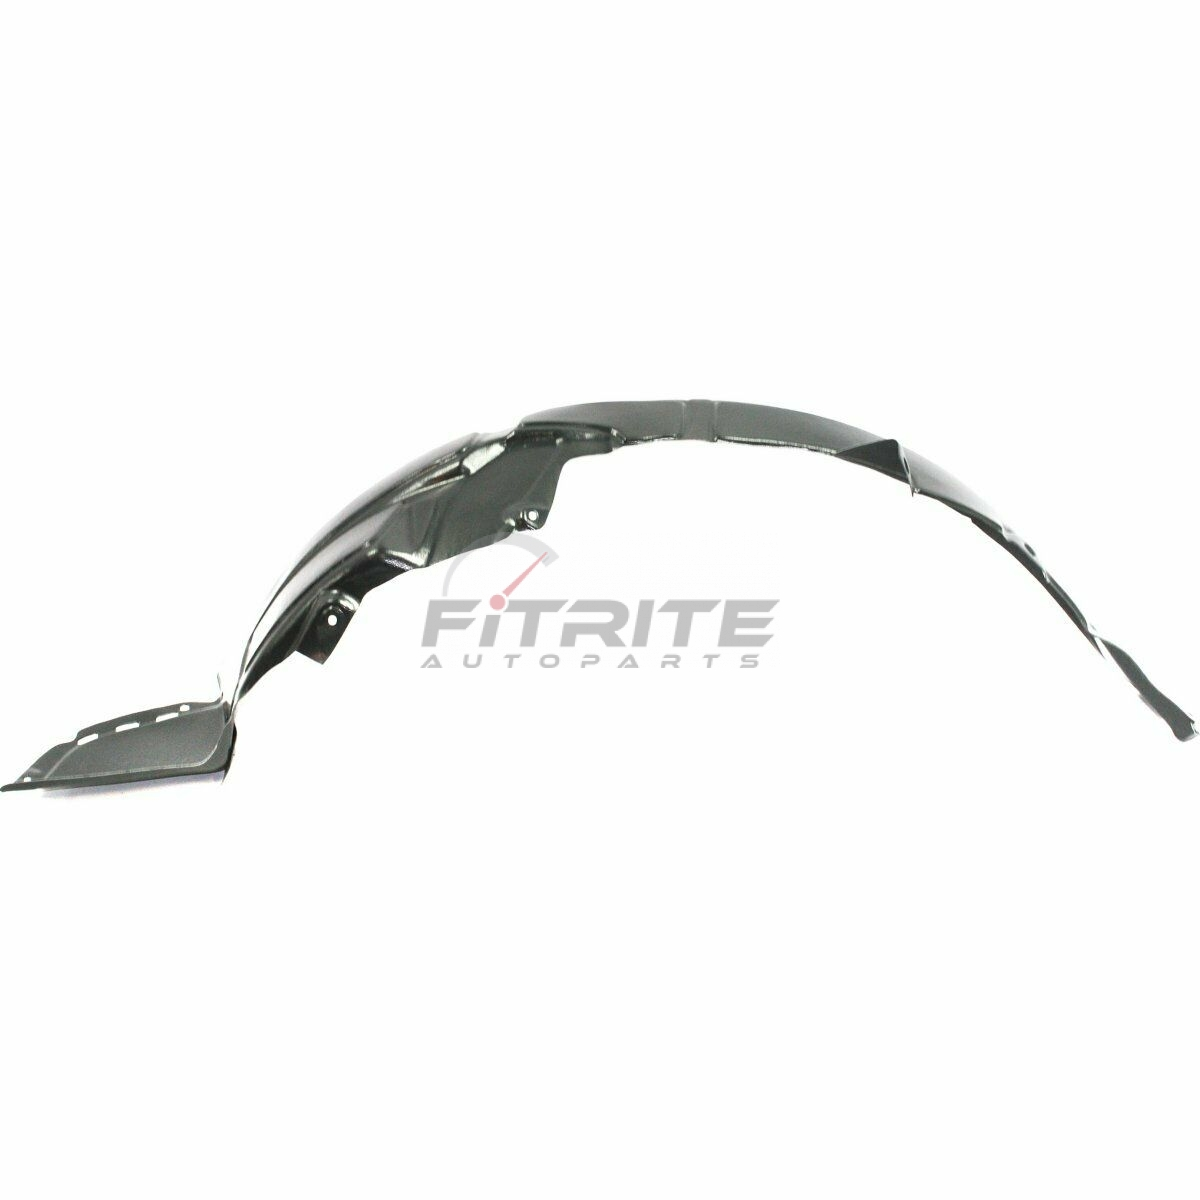 New Front Right Fender Liner for 2013-2016 Hyundai Accent HY1249136 868121R010